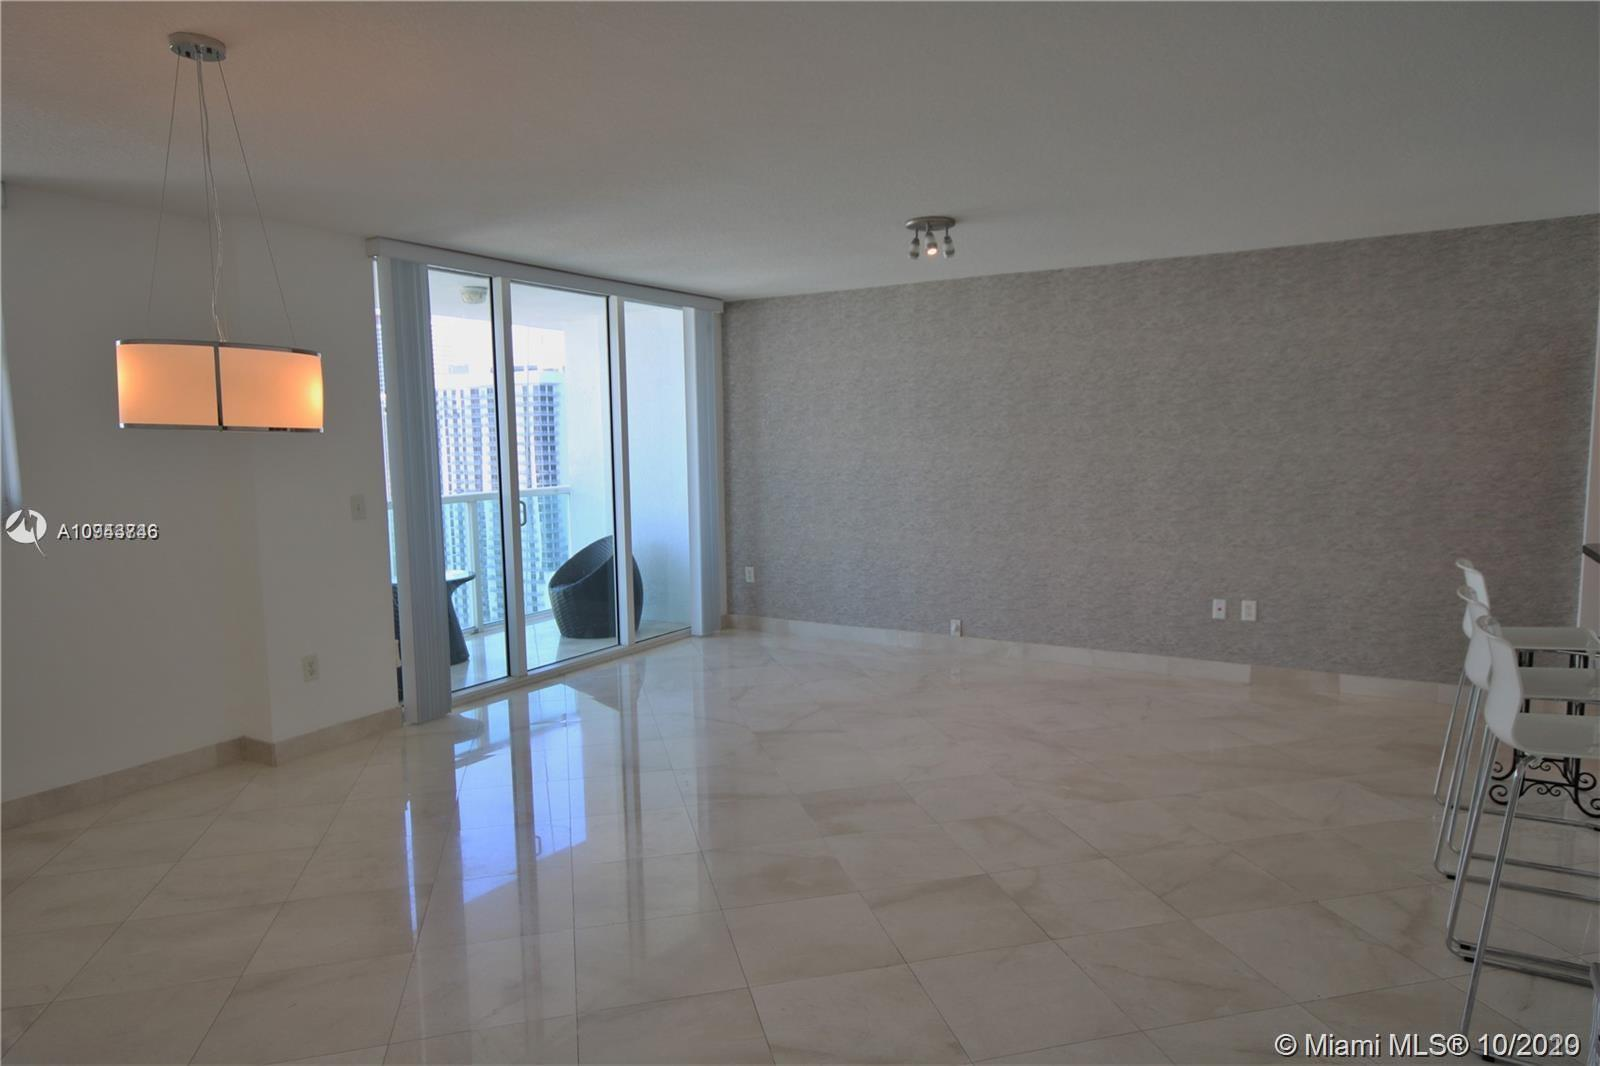 GORGEOUS CORNER UNIT REMODELED INCLUDING WOOD FLOORS IN TE BEDROOMS AND THE TILE IN TEH GUEST BATH.